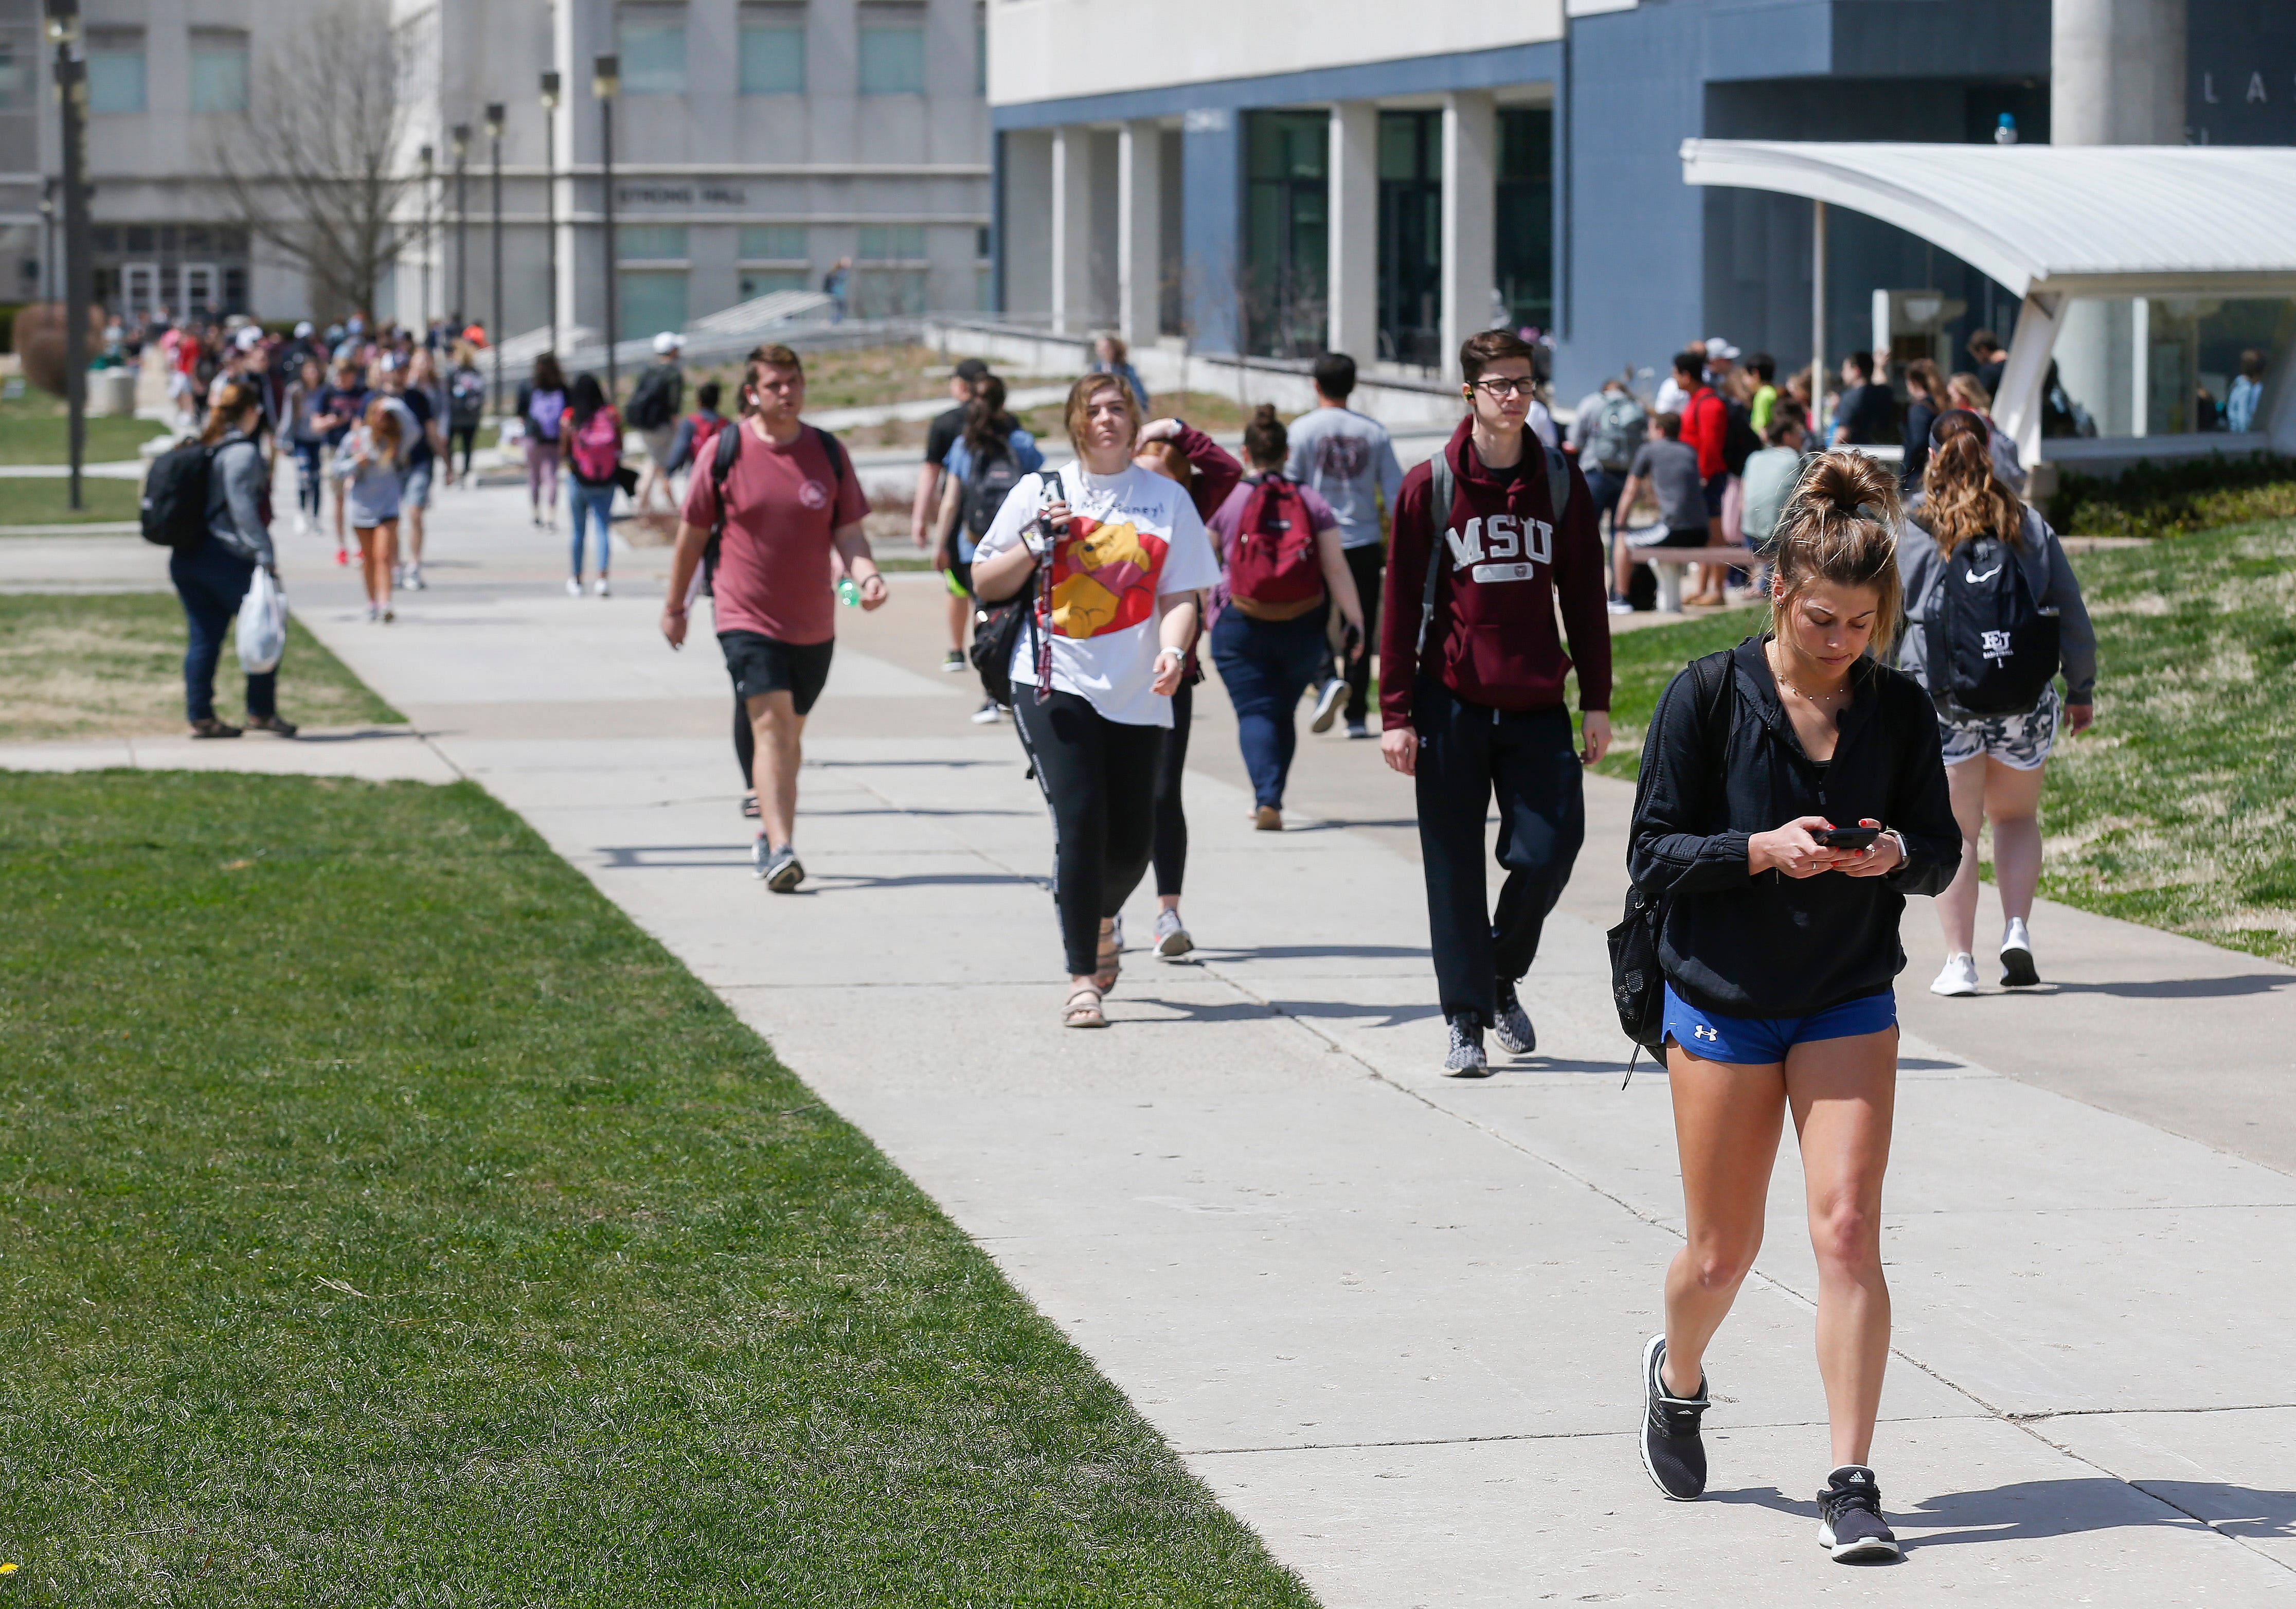 Students walk on campus at Missouri State University on Wednesday, April 3, 2019.